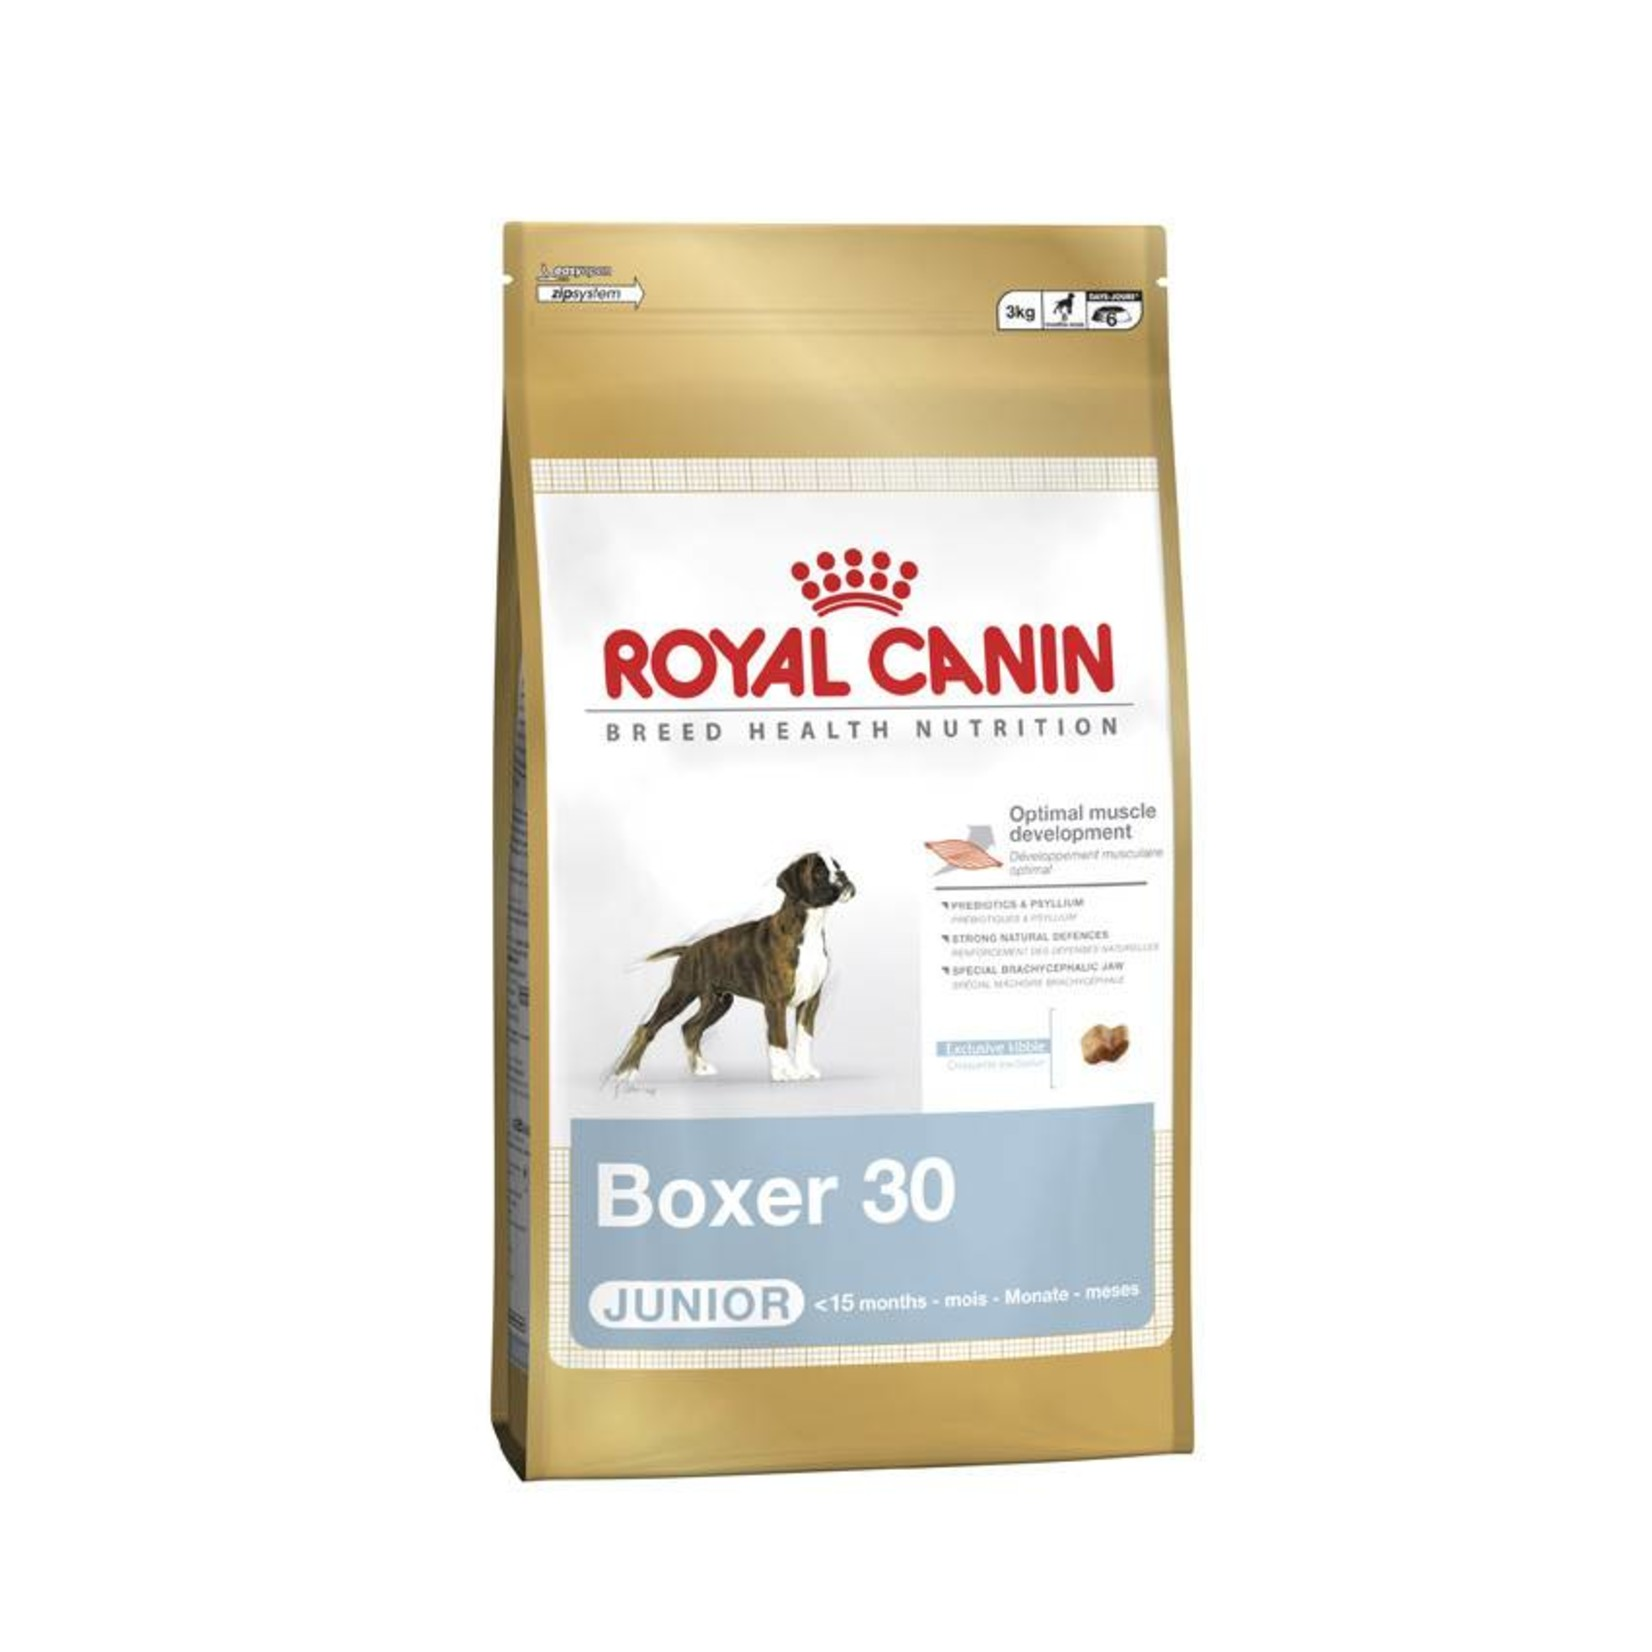 Royal Canin Boxer Junior Dog Dry Food